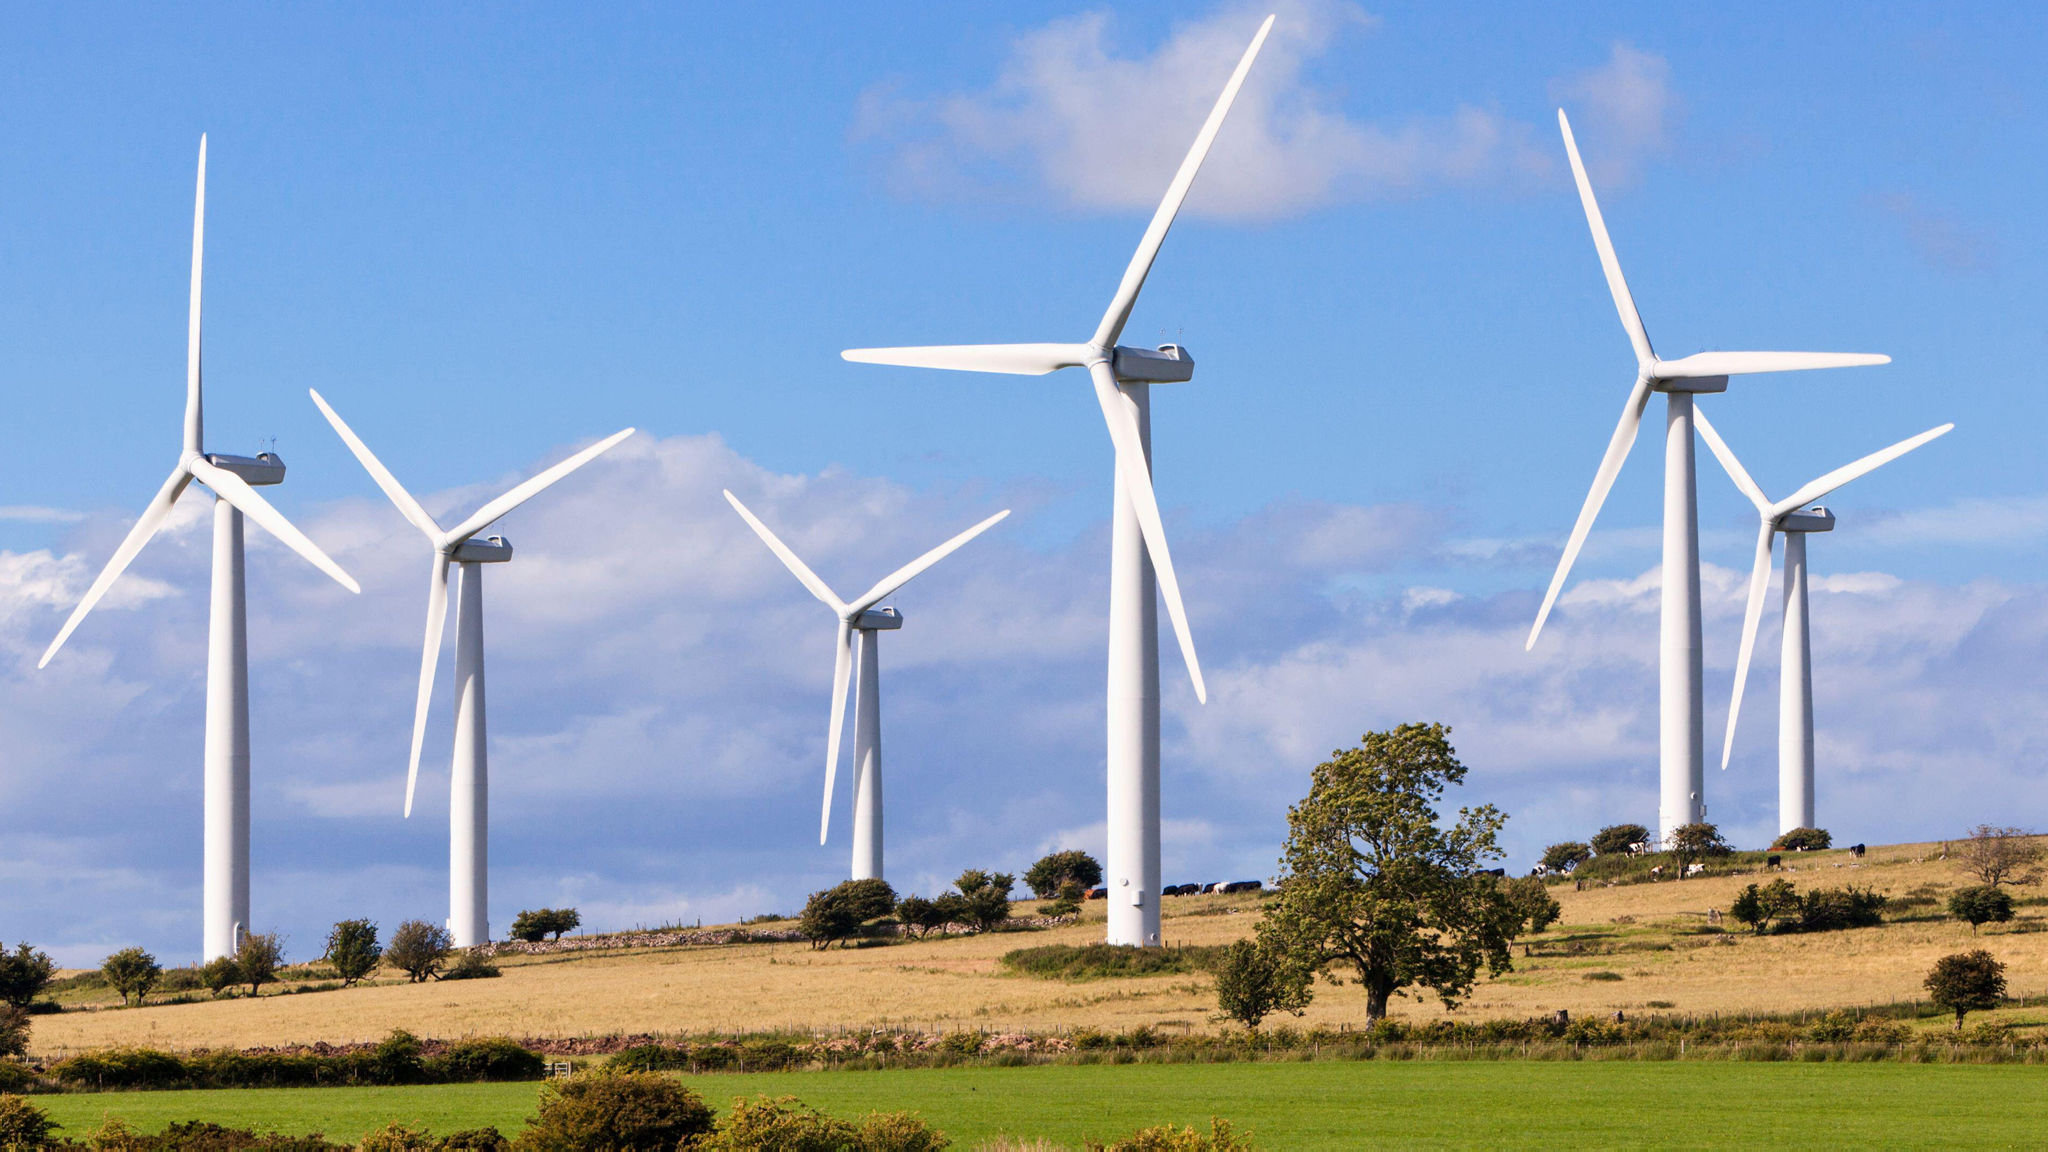 Johnson revives onshore wind farms after 4-year ban | Financial Times